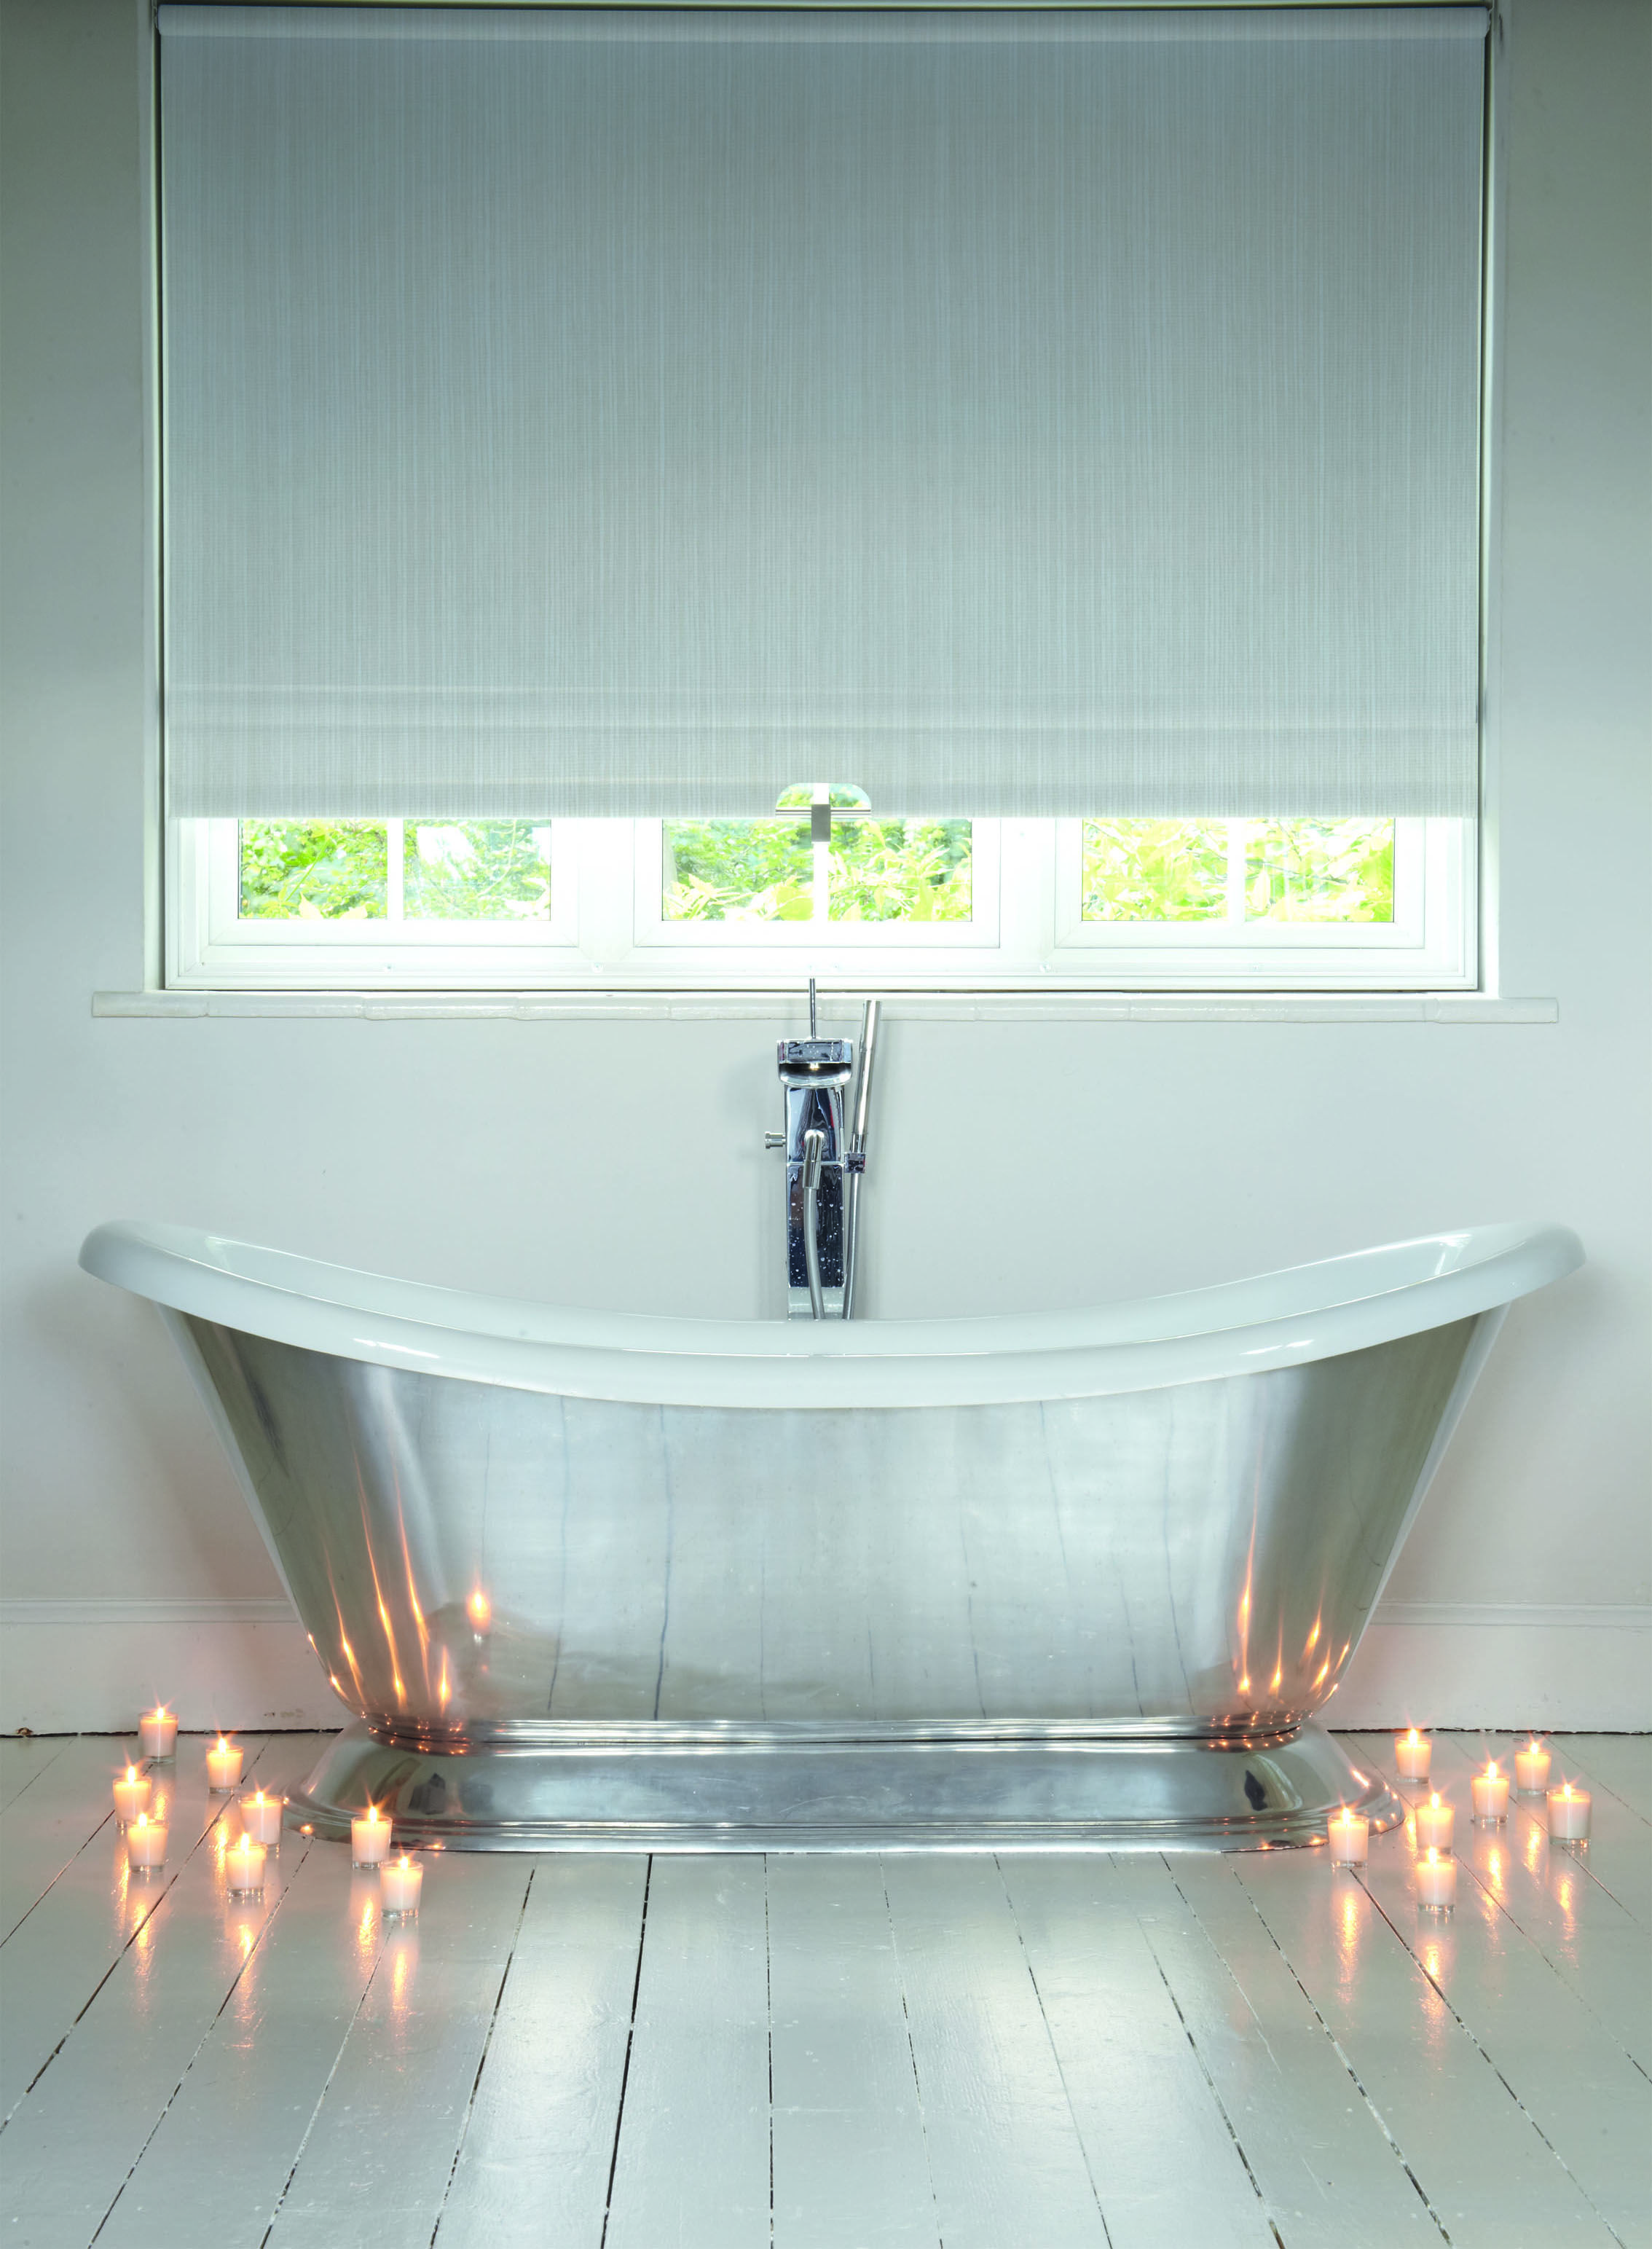 This Stunning Roller Blinds Can Make Any Bathroom Look Fresh And Modern Rollerblinds Whiteblind Relaxing Bathroom Bathroom Windows Bathroom Blinds